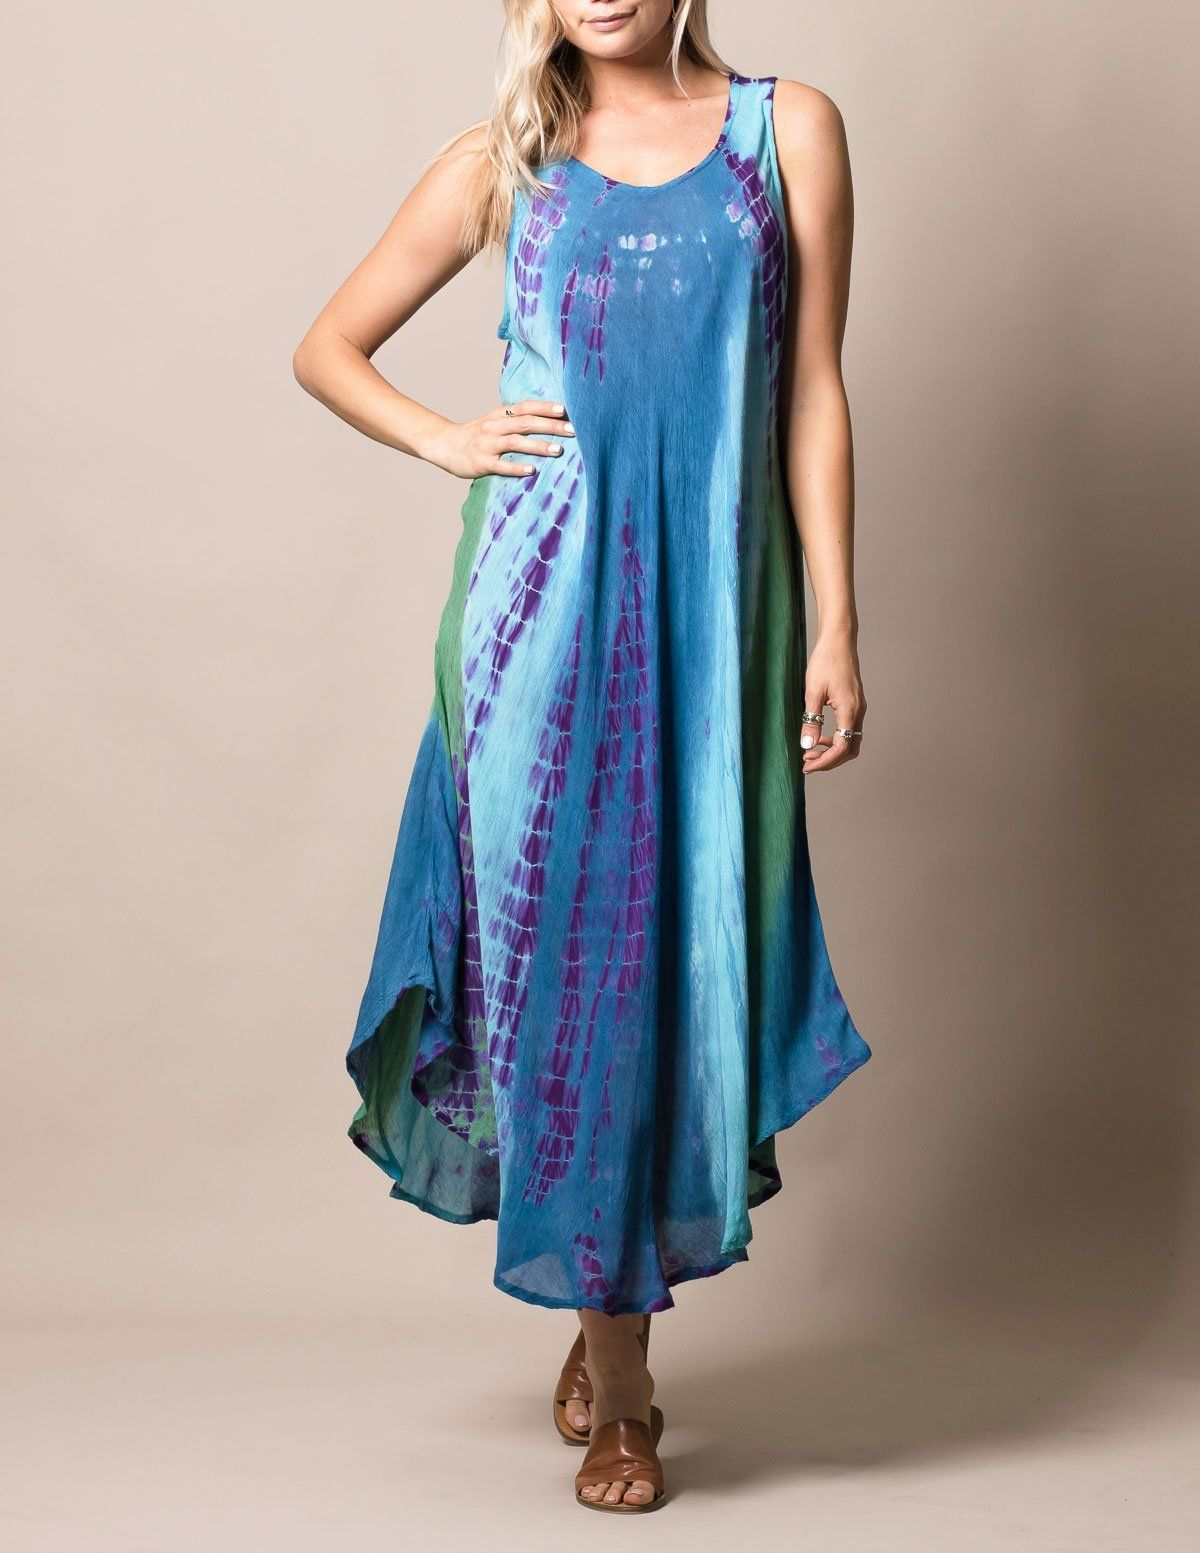 04b0f0414b28 Boho Breeze Tie-Dye Maxi Dress - Cosmic Blue